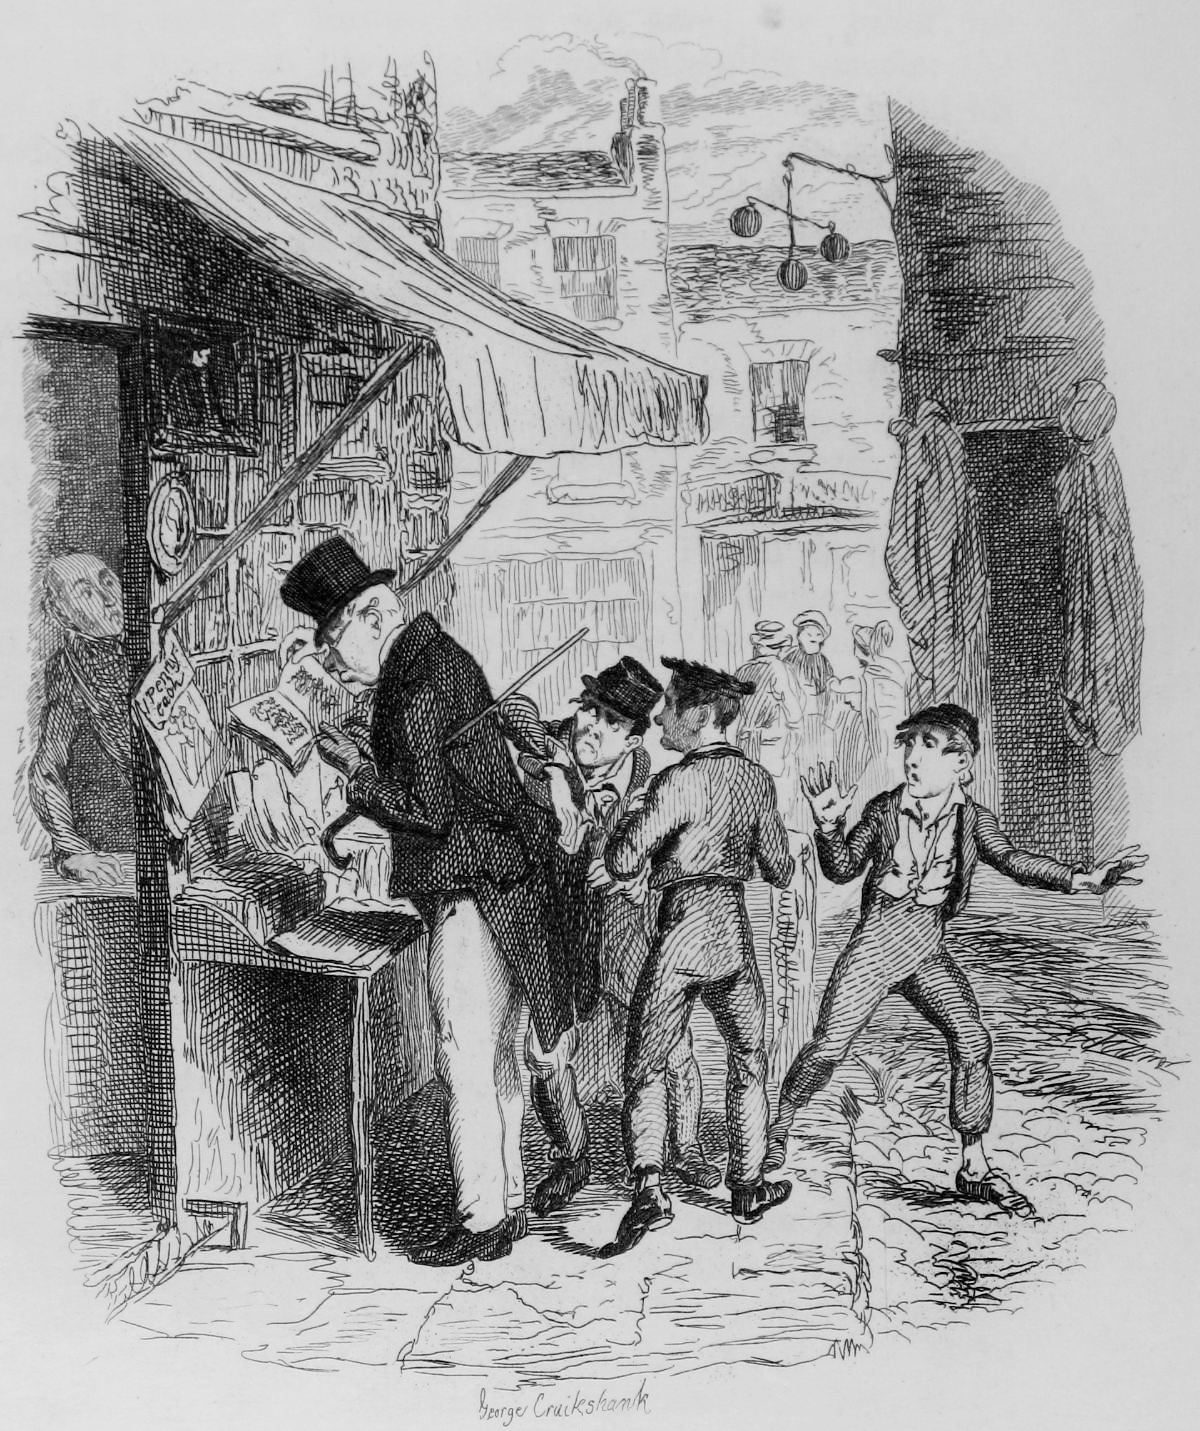 A photograph of an engraving in The Writings of Charles Dickens volume 4, Oliver Twist, titled 'Oliver amazed at the Dodger's Mode of 'going to Work' '